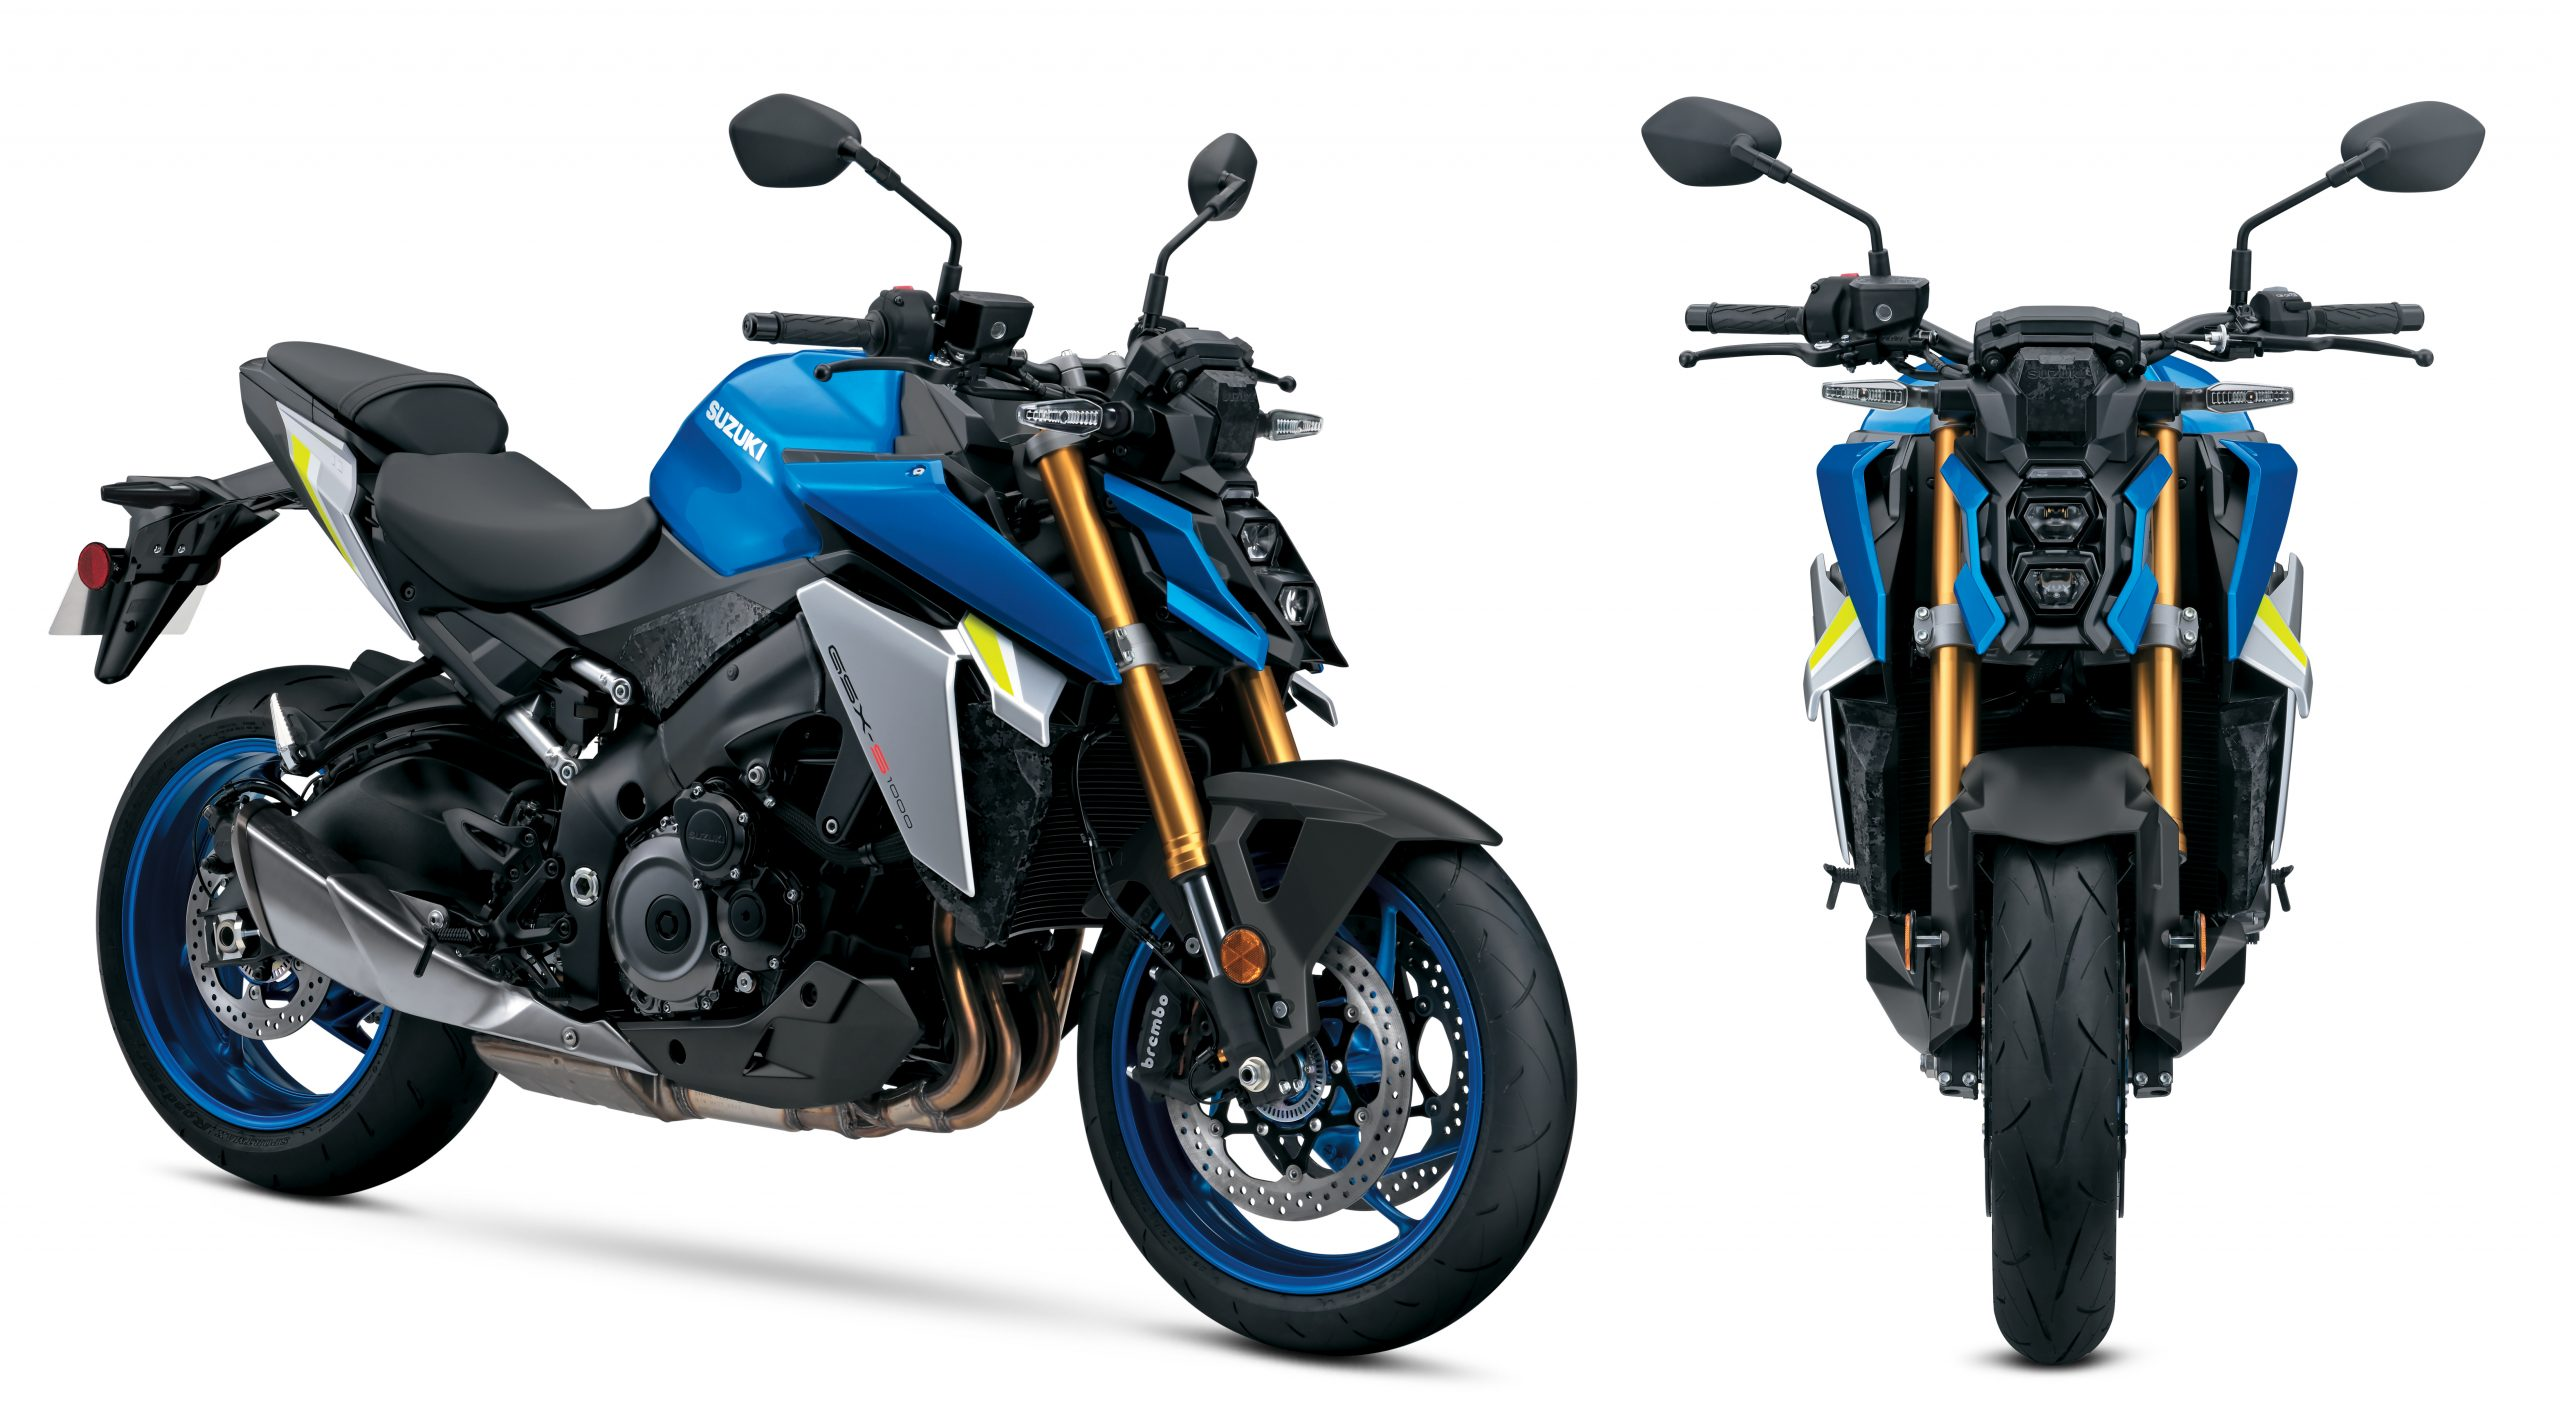 2022 Suzuki GSX-S1000 features new angular styling with an ergonomically comfortable, yet sporty riding position